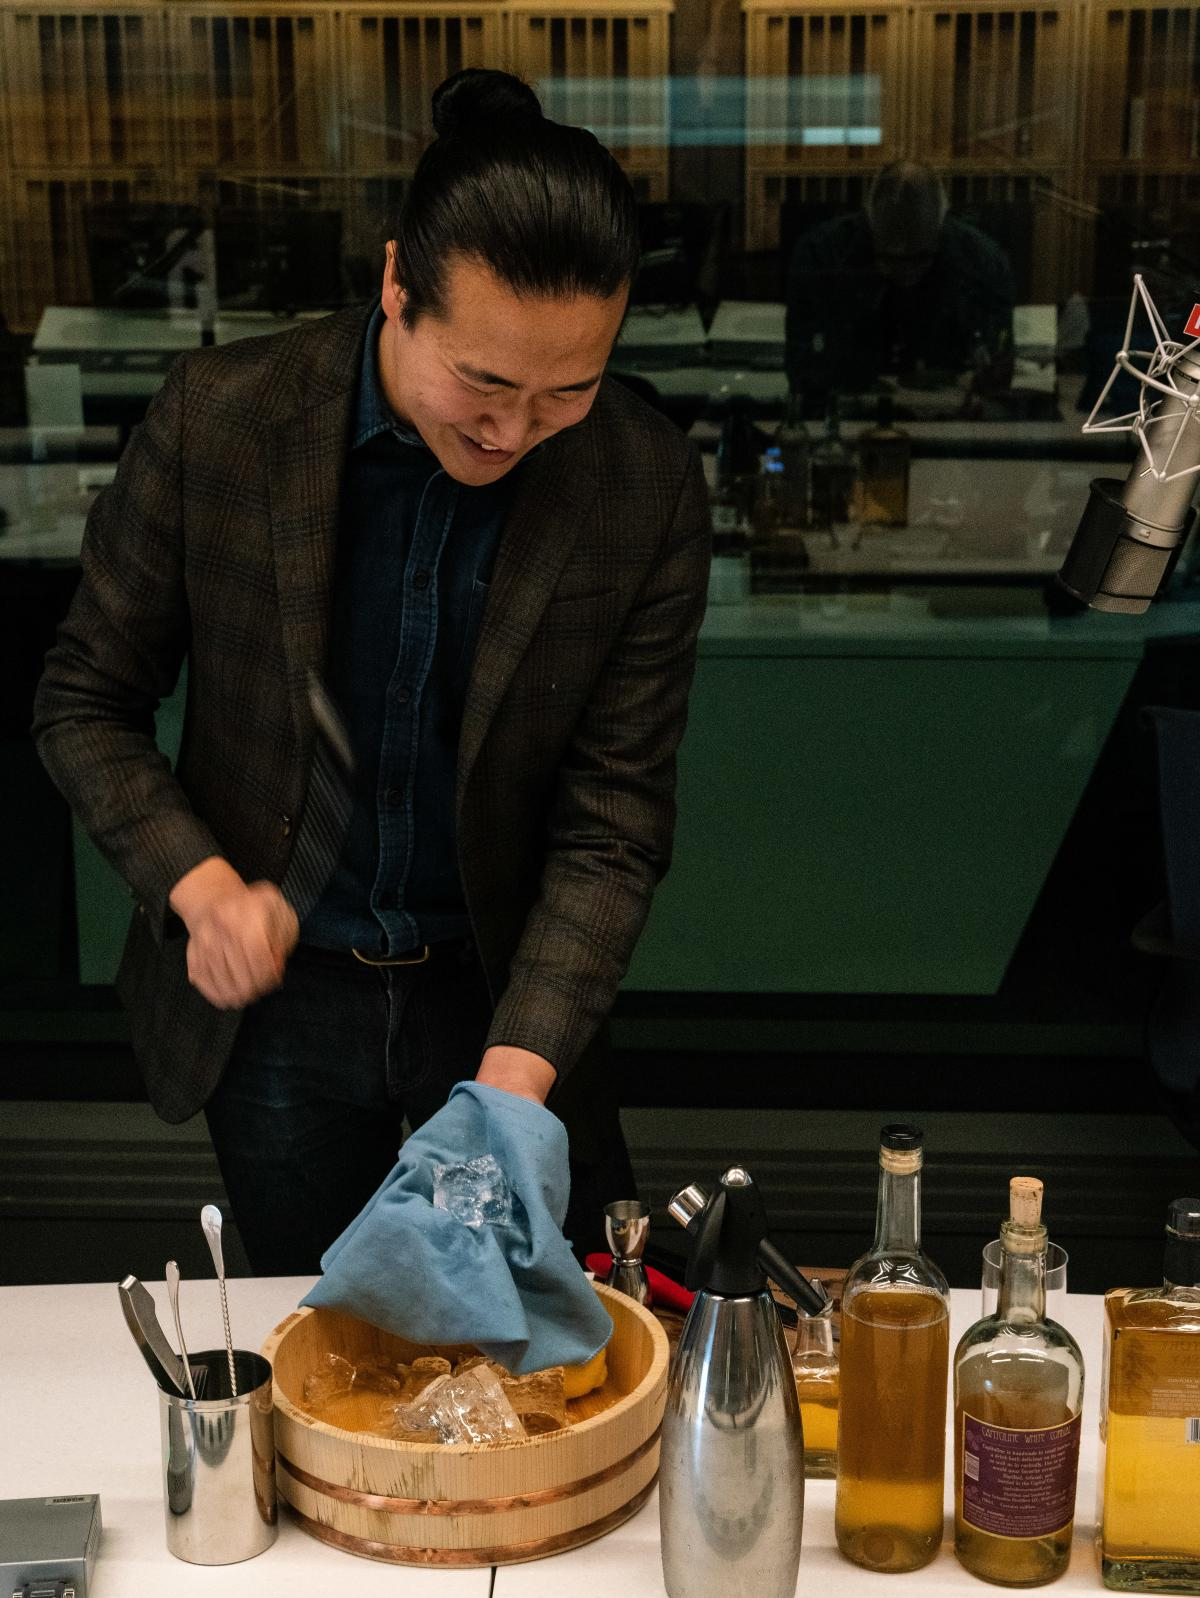 Eddie Kim, co-host of the Shift Drink podcast, says a cold glass is key to the cocktail.